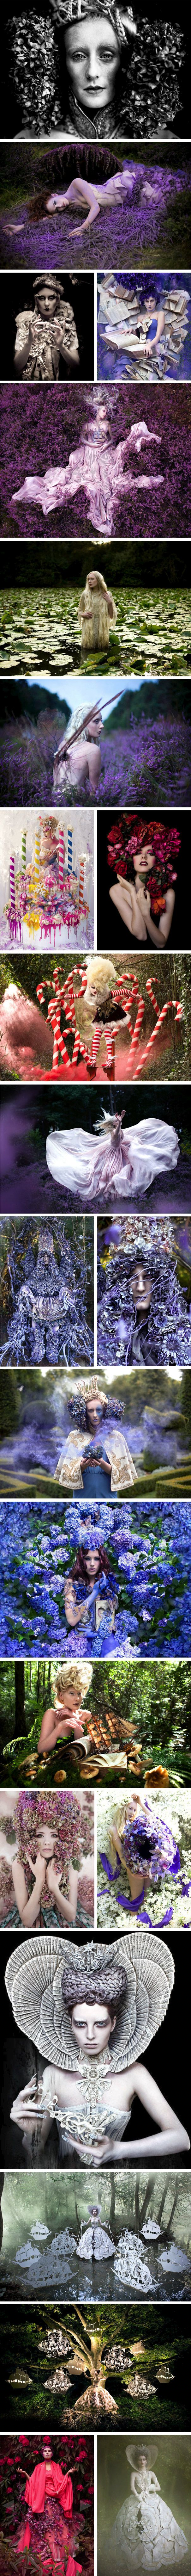 © 2012 Kirsty Mitchell Photography